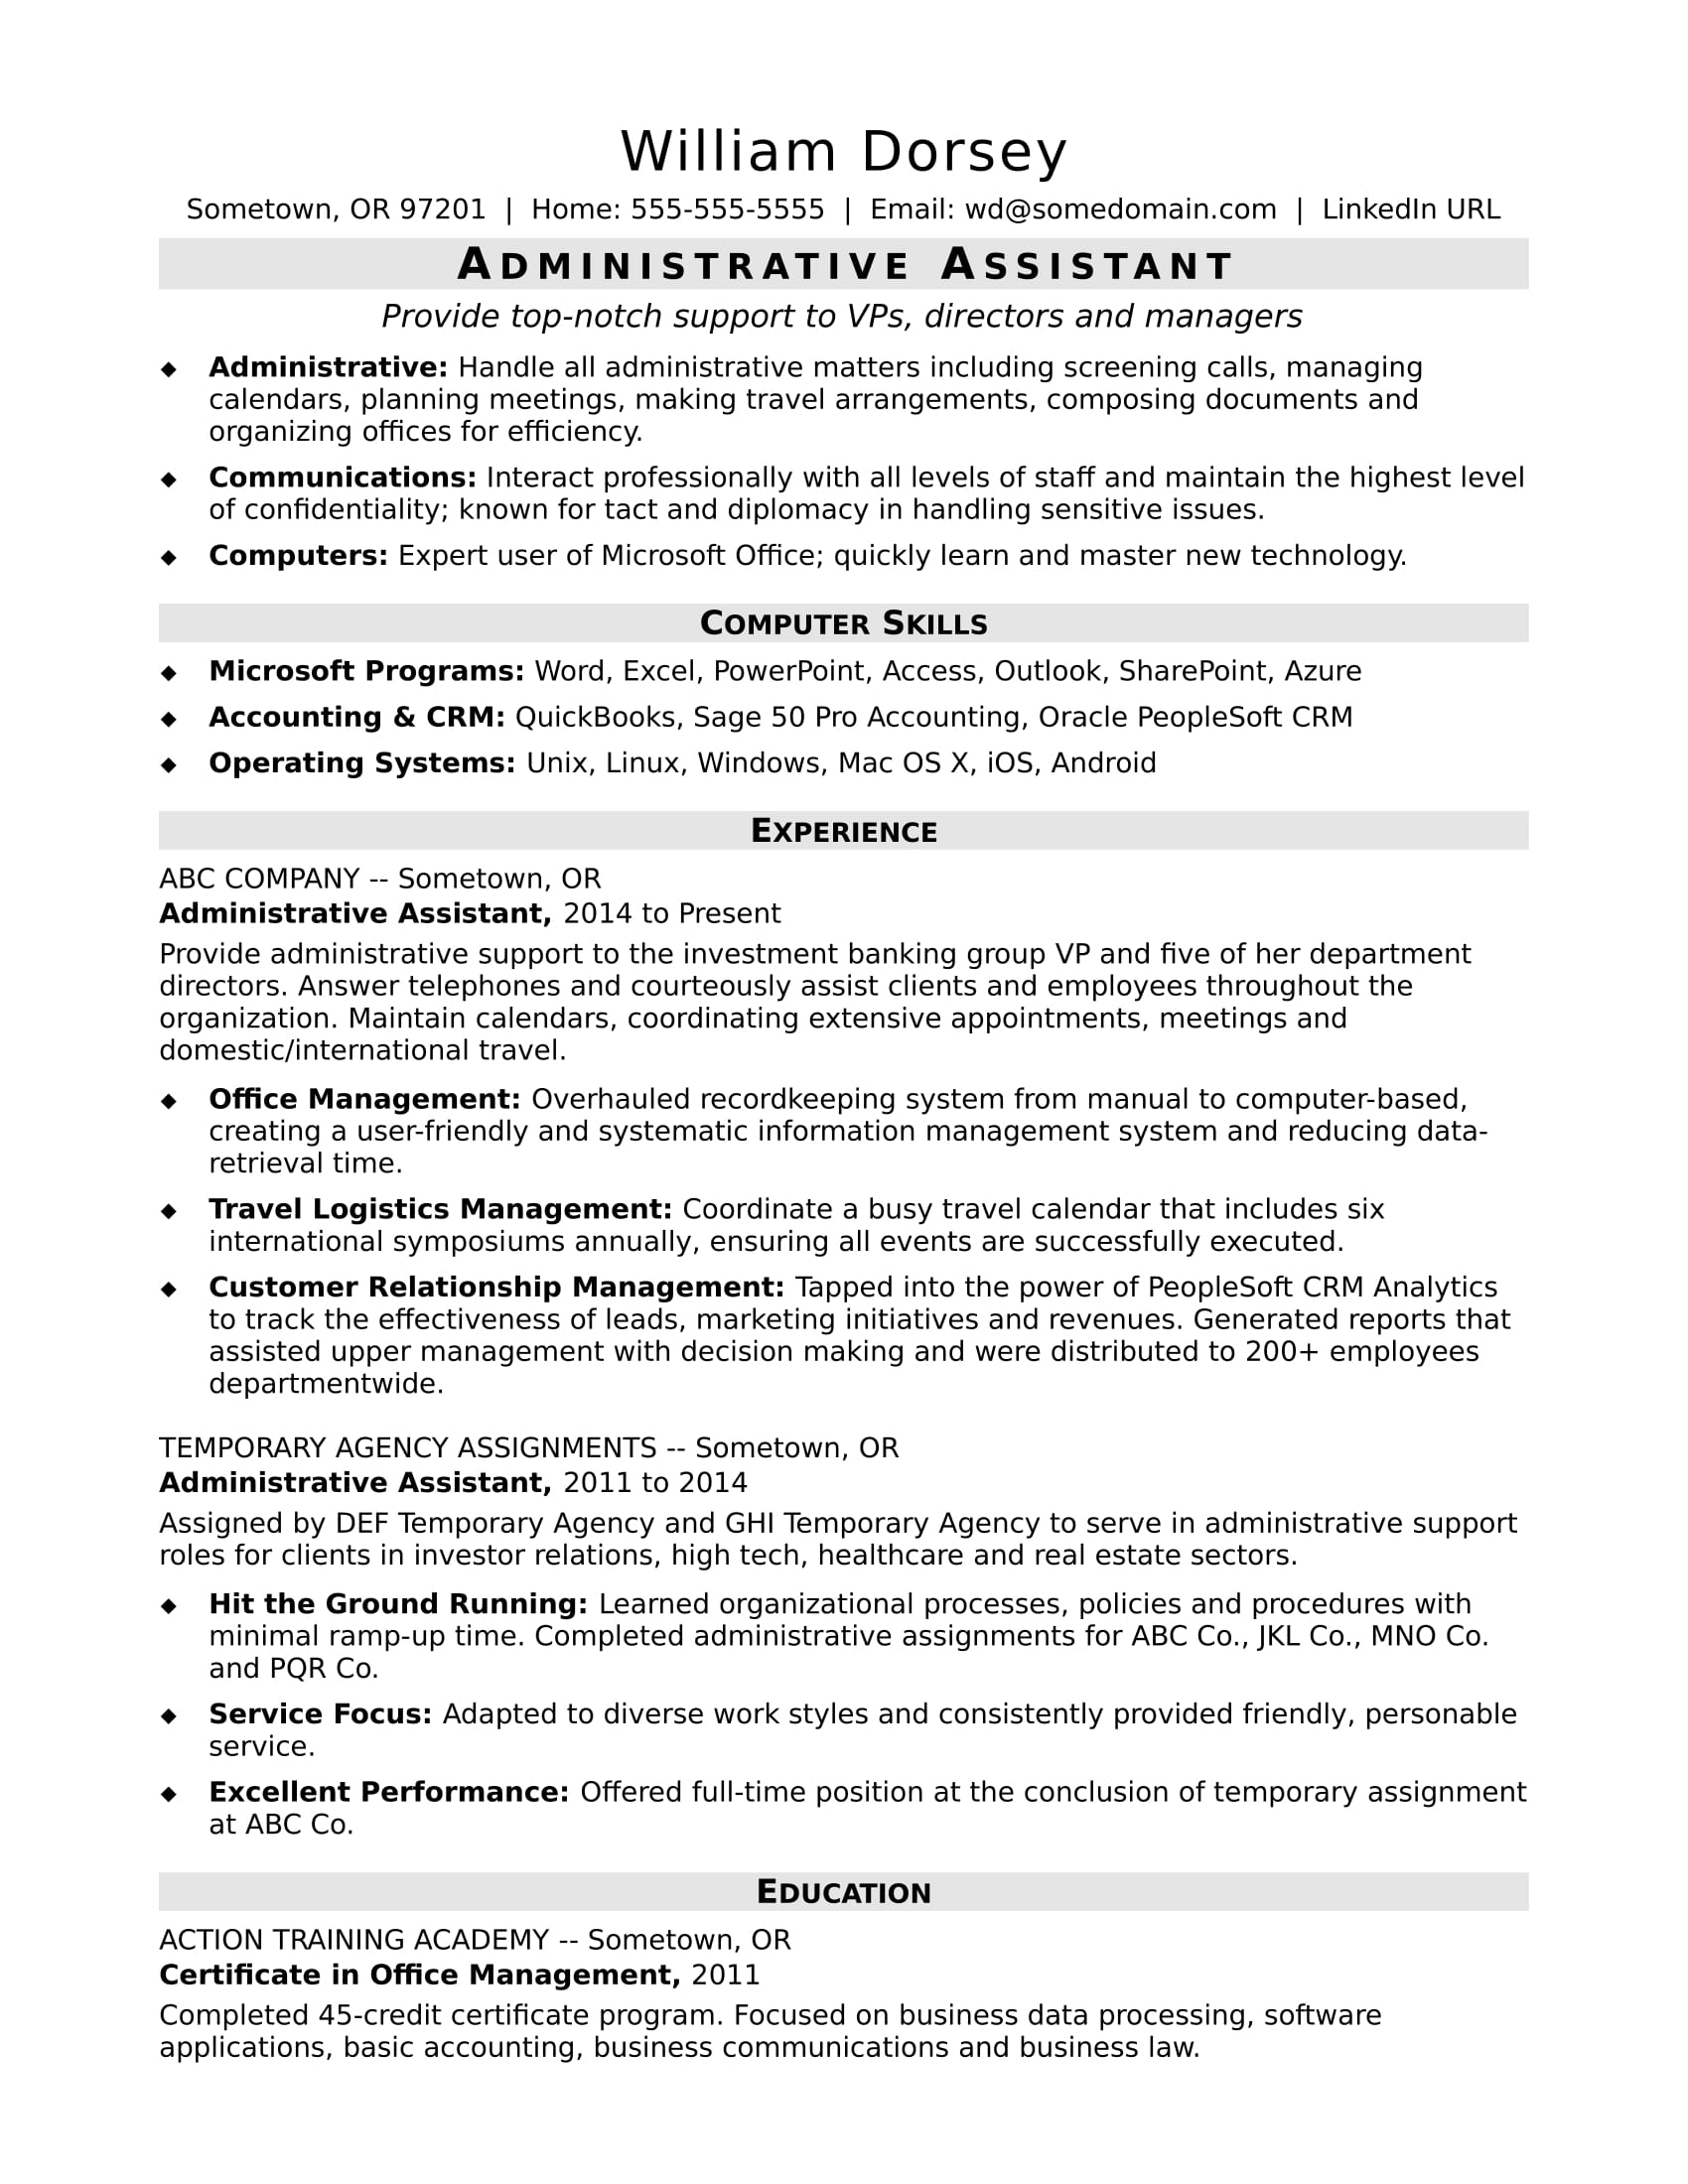 Sample Resume For A Midlevel Administrative Assistant  Skills For Administrative Assistant Resume